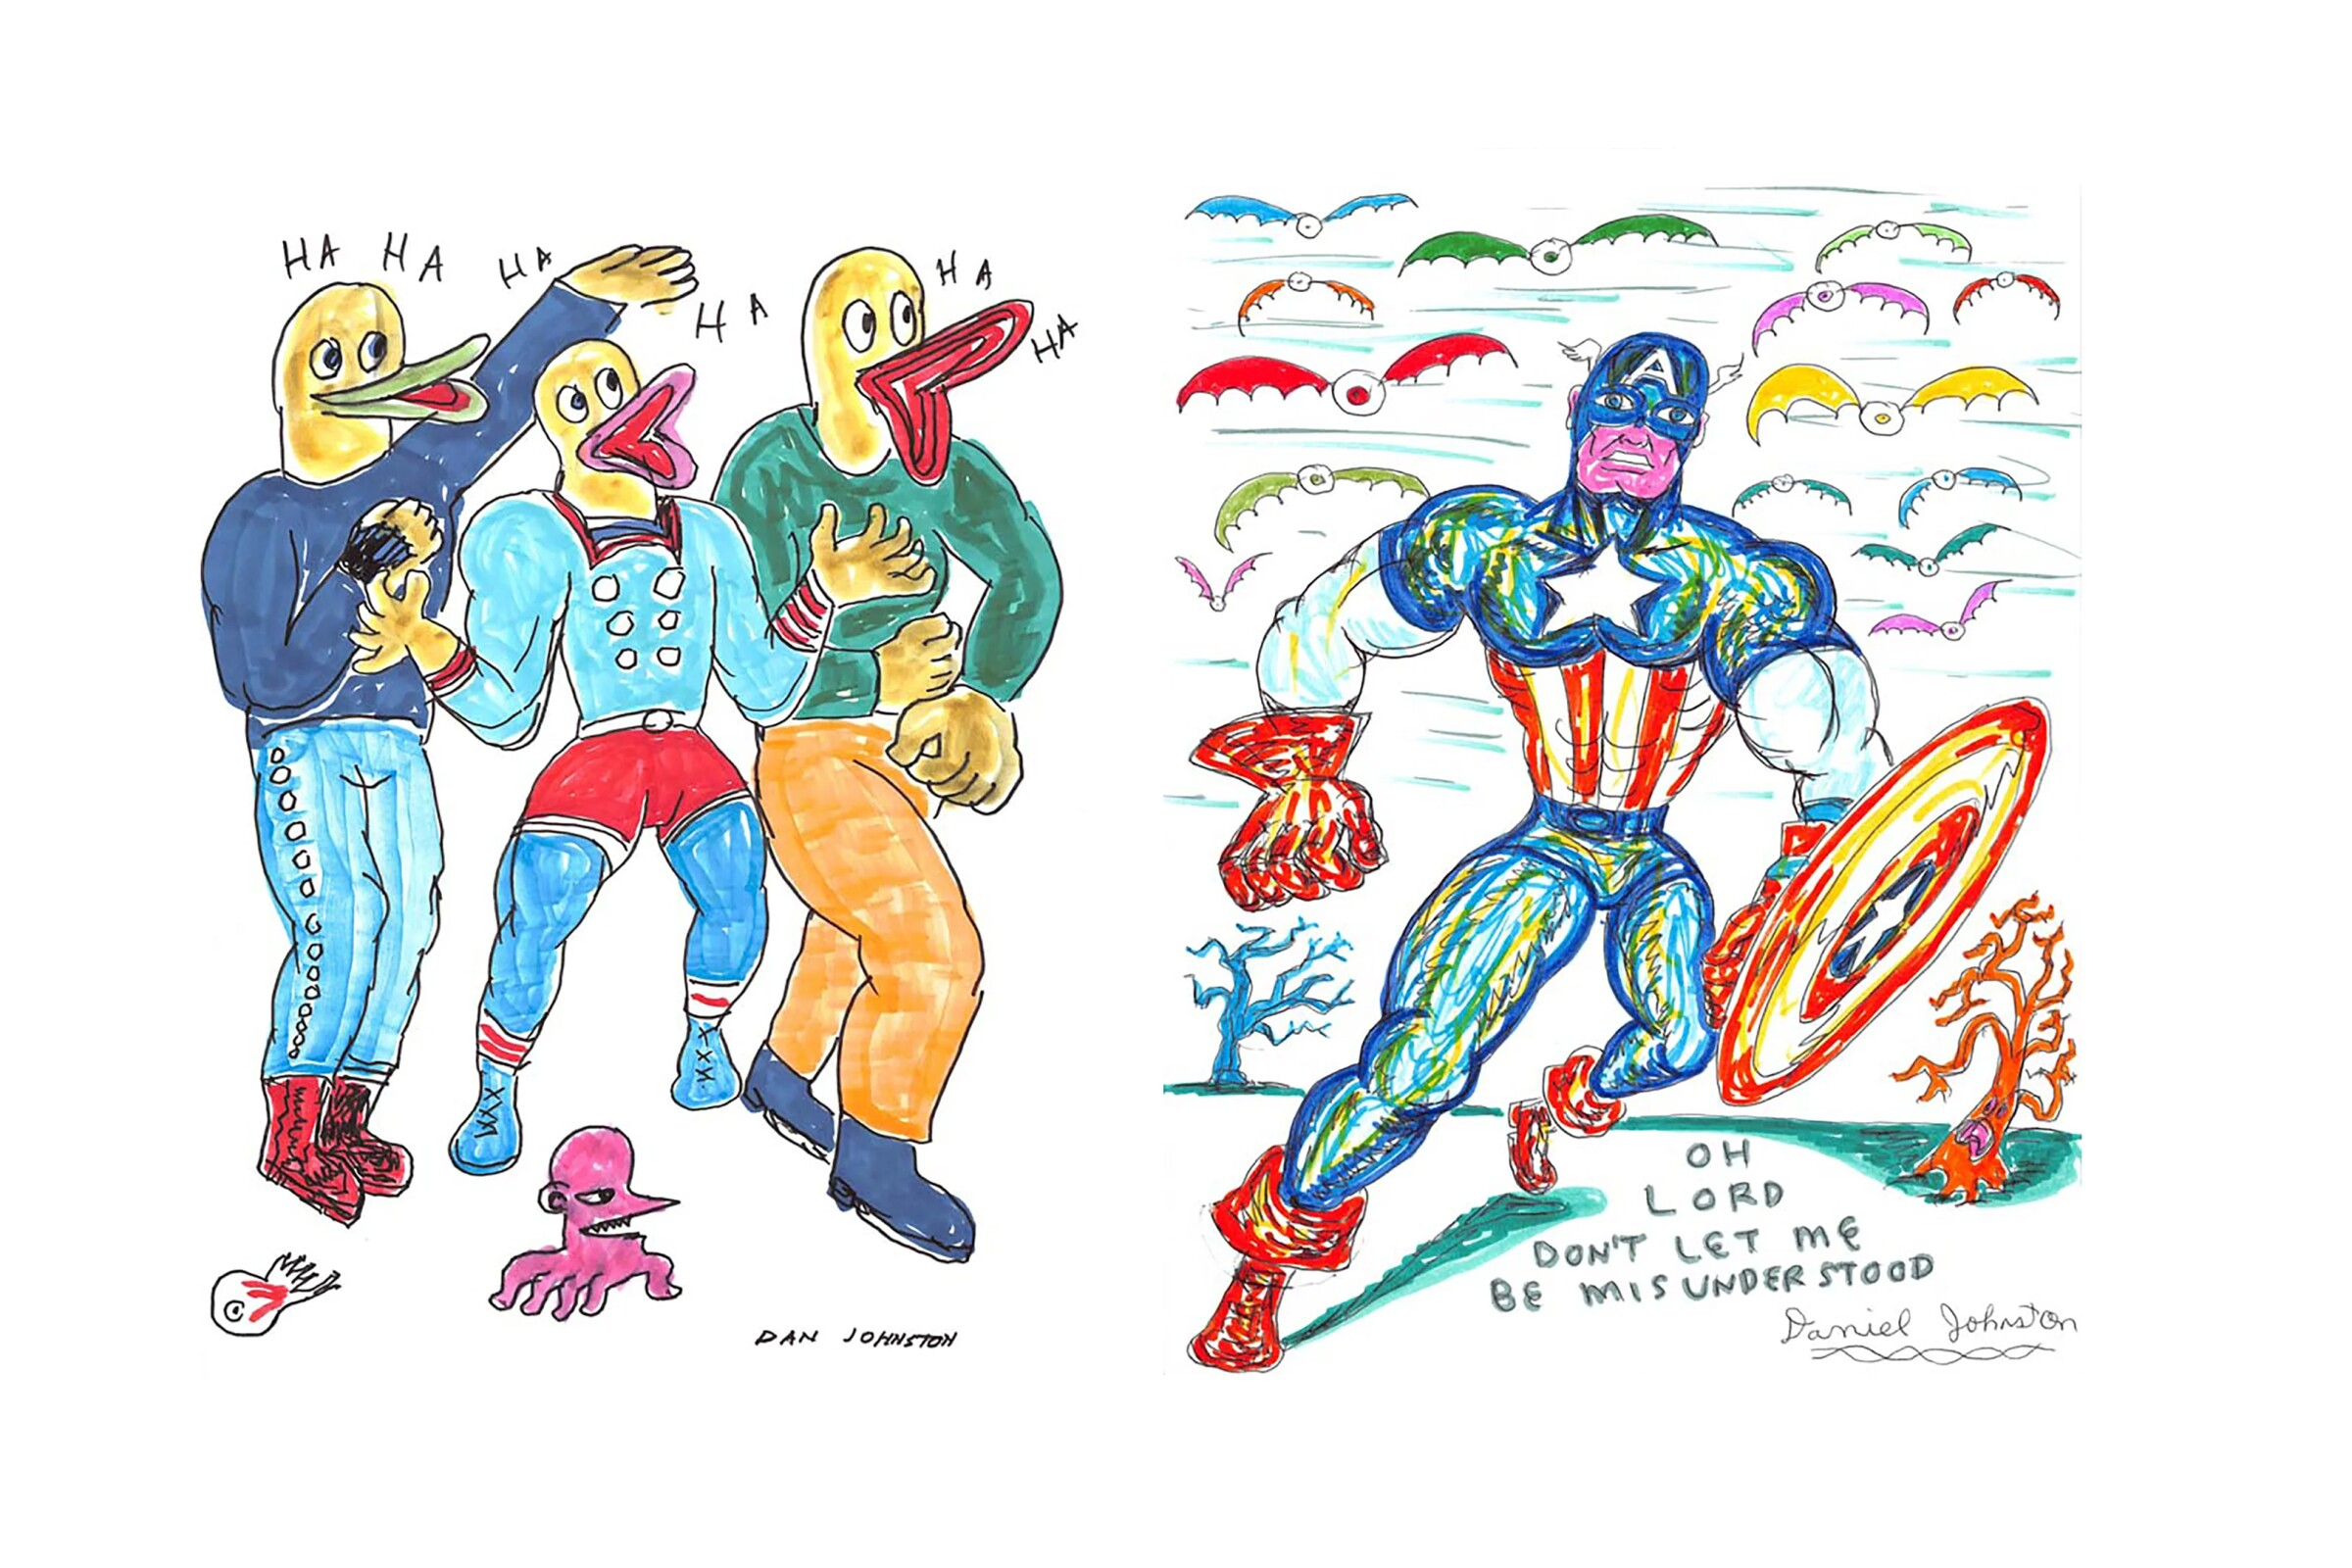 """Two works by Daniel Johnston: (left) """"Ha Ha Ha,"""" 1998, and """"Oh Lord Please Don't Be Misunderstood,"""" (2002)"""